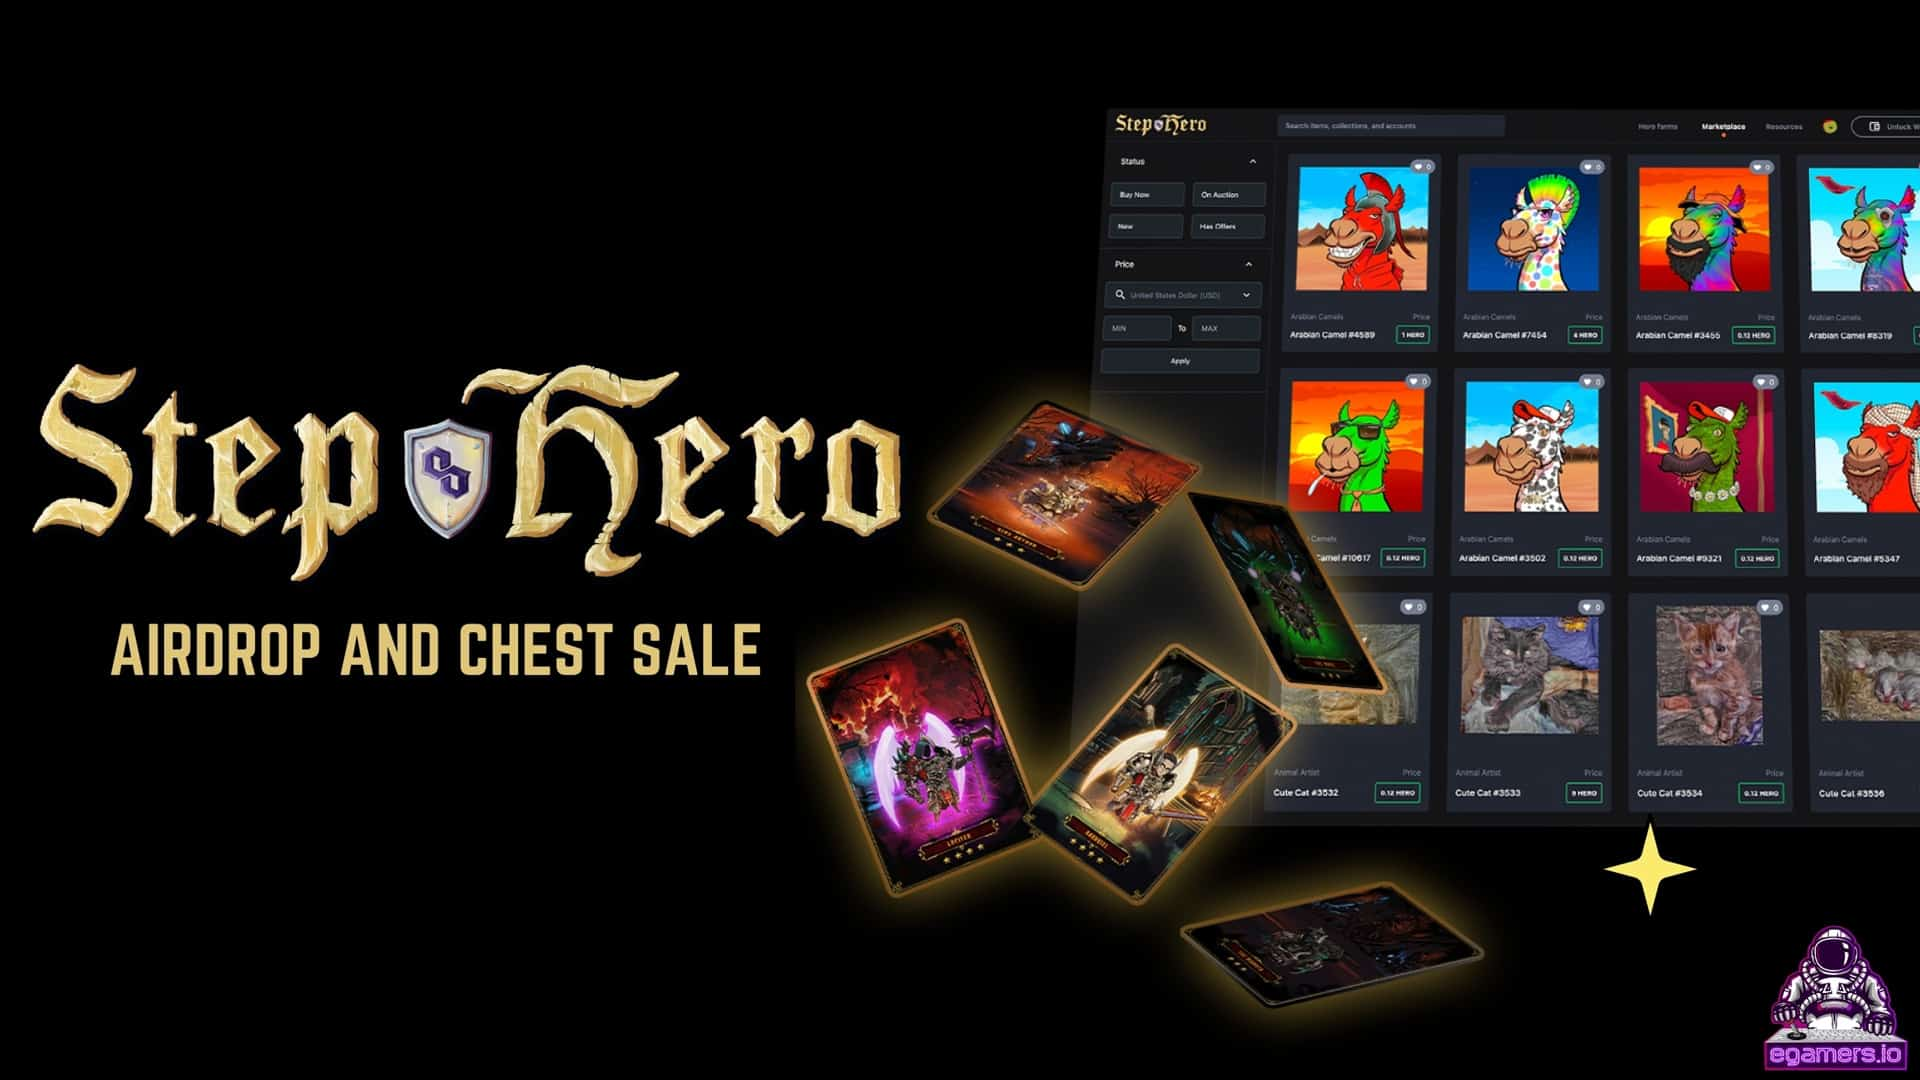 Step Hero Airdrop And Chest Sale